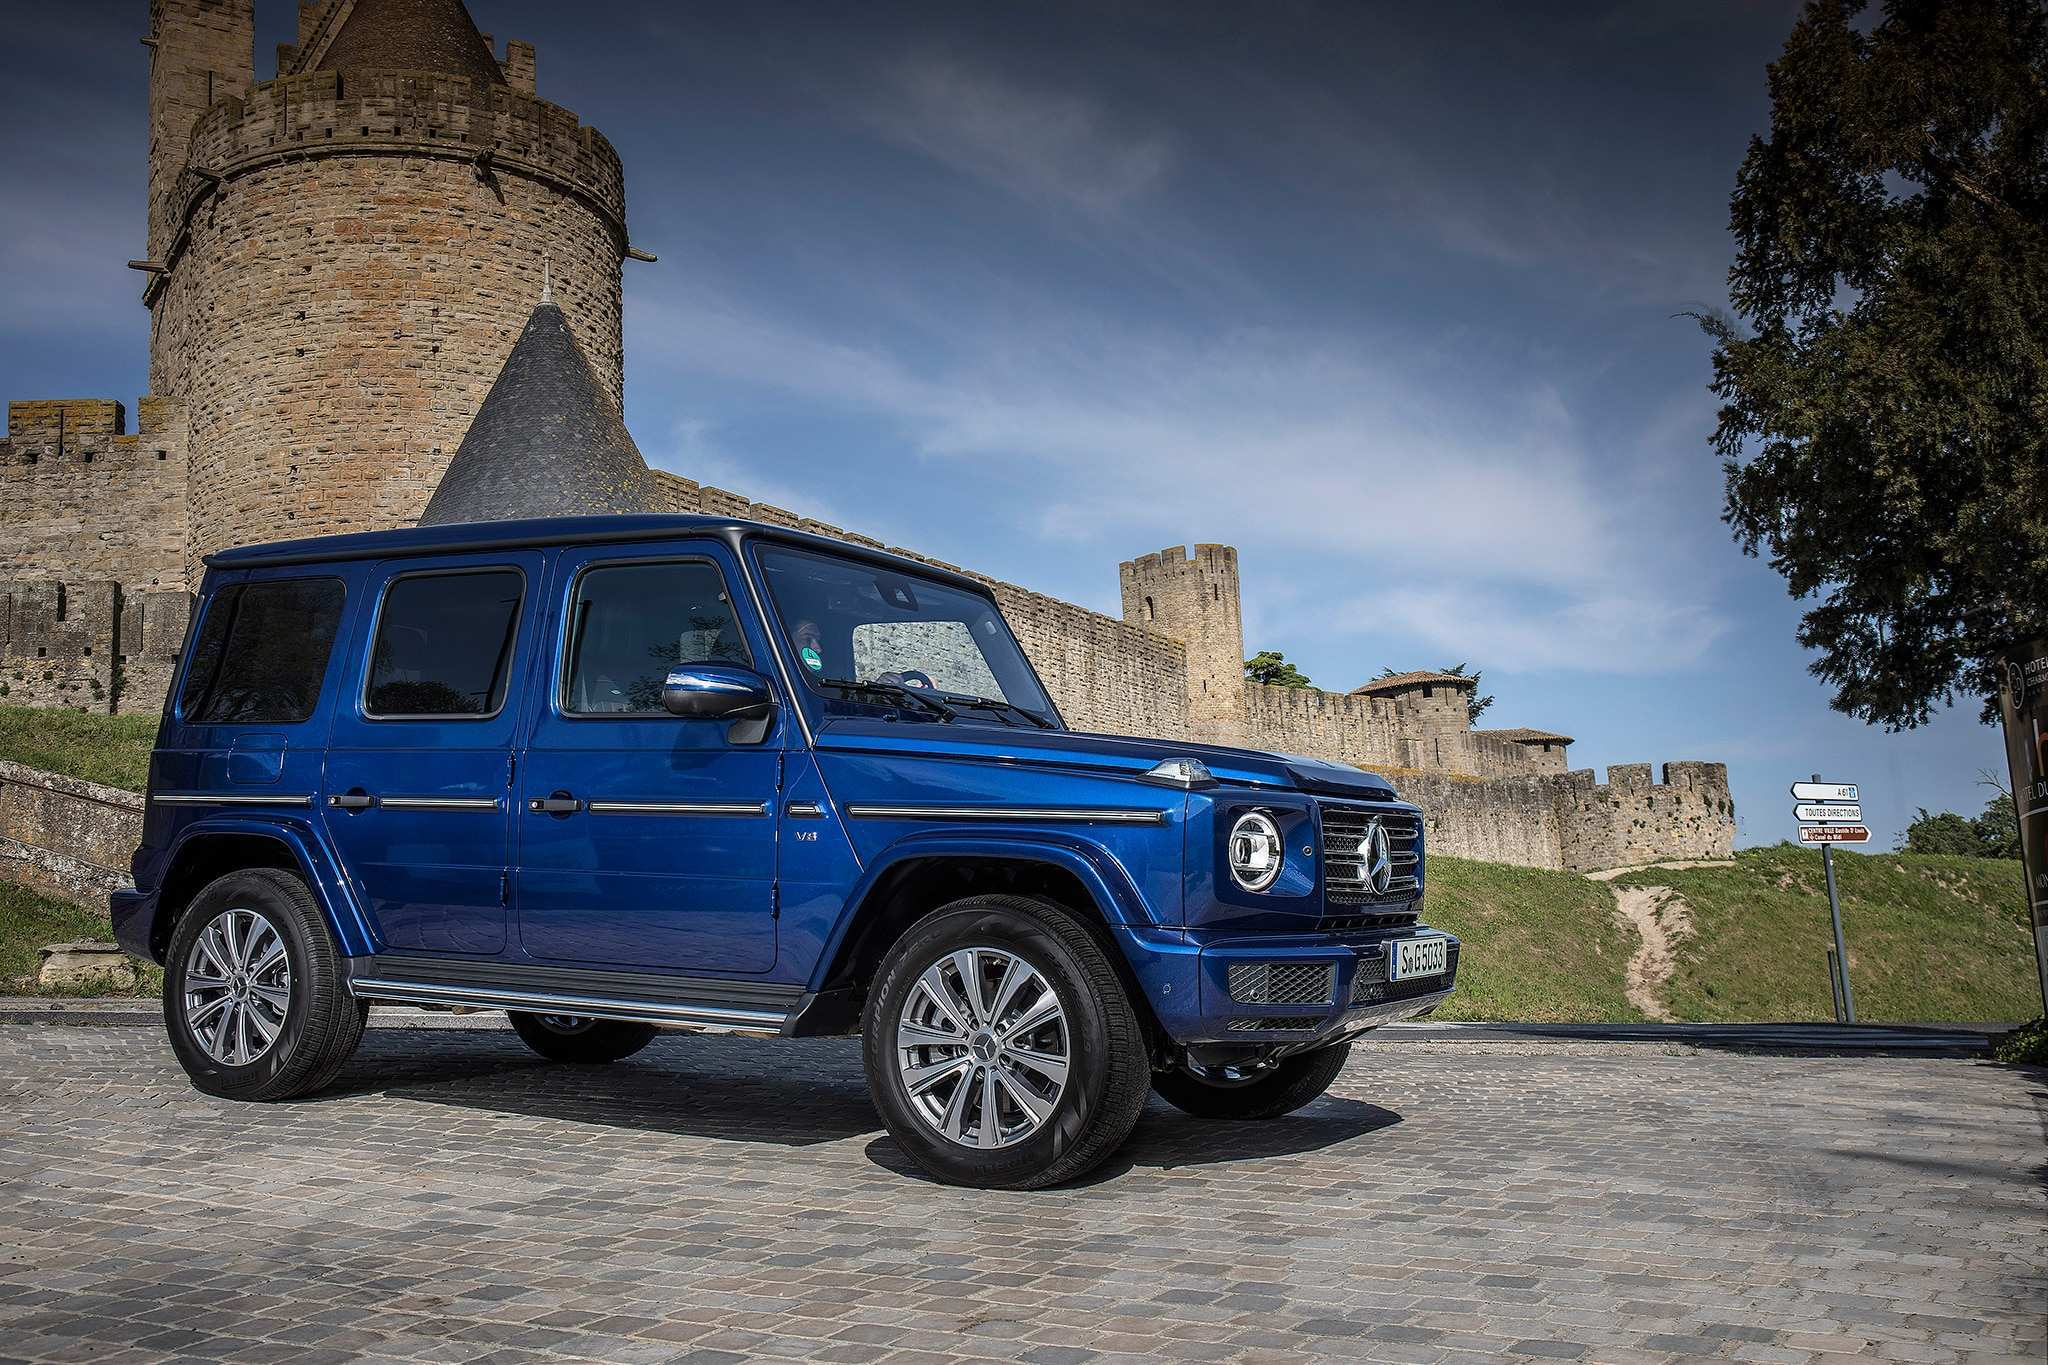 56 All New Mercedes G 2019 For Sale Spesification First Drive by Mercedes G 2019 For Sale Spesification